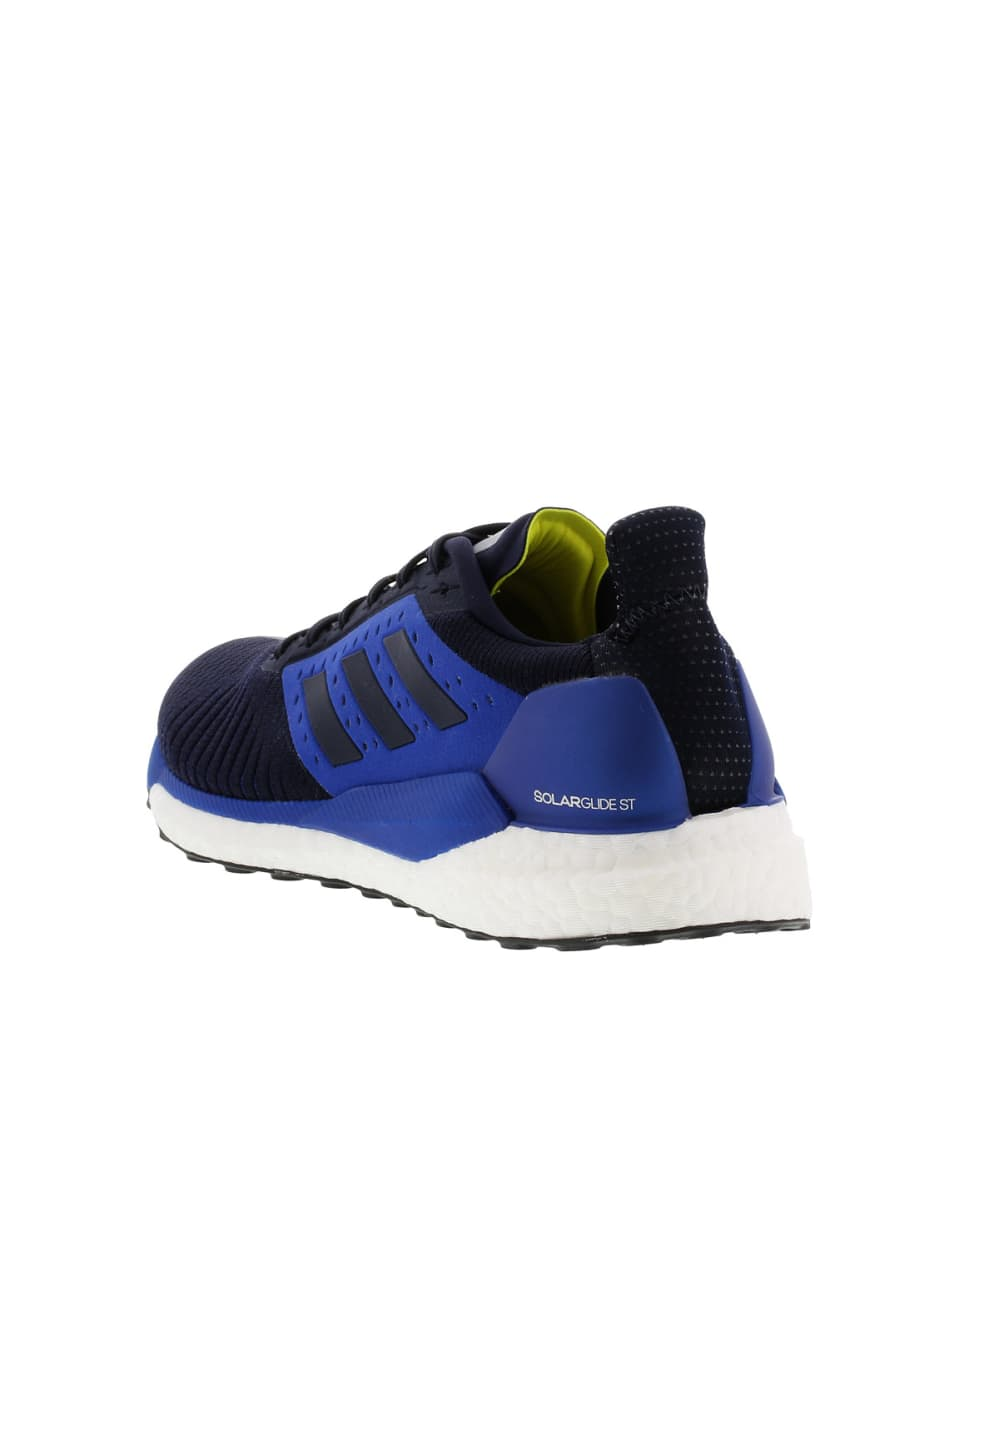 huge discount 5e6f2 b6278 Next. -60%. adidas. Solar Glide St - Chaussures running pour Homme